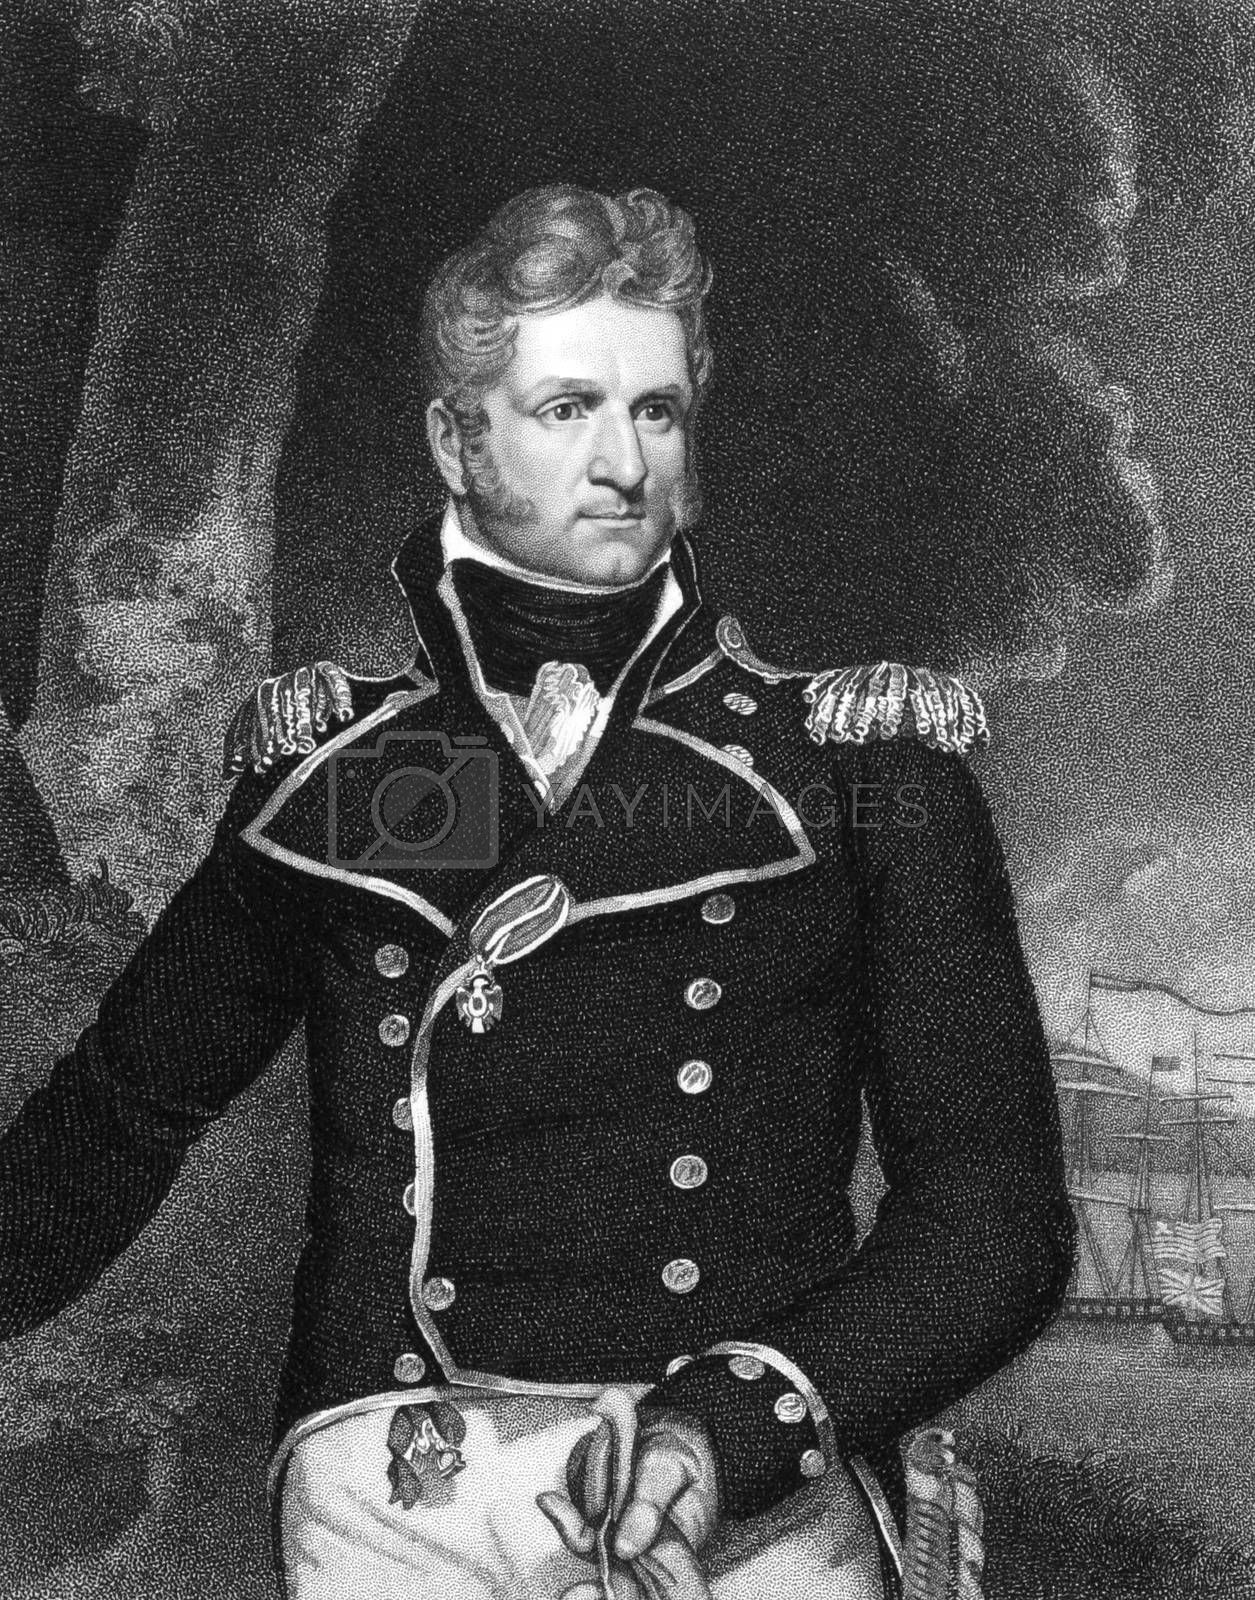 Thomas Macdonough (1783-1825) on engraving from 1834. American naval officer. Engraved by J.B Forrest and published in ''National Portrait Gallery of Distinguished Americans'',USA,1834.